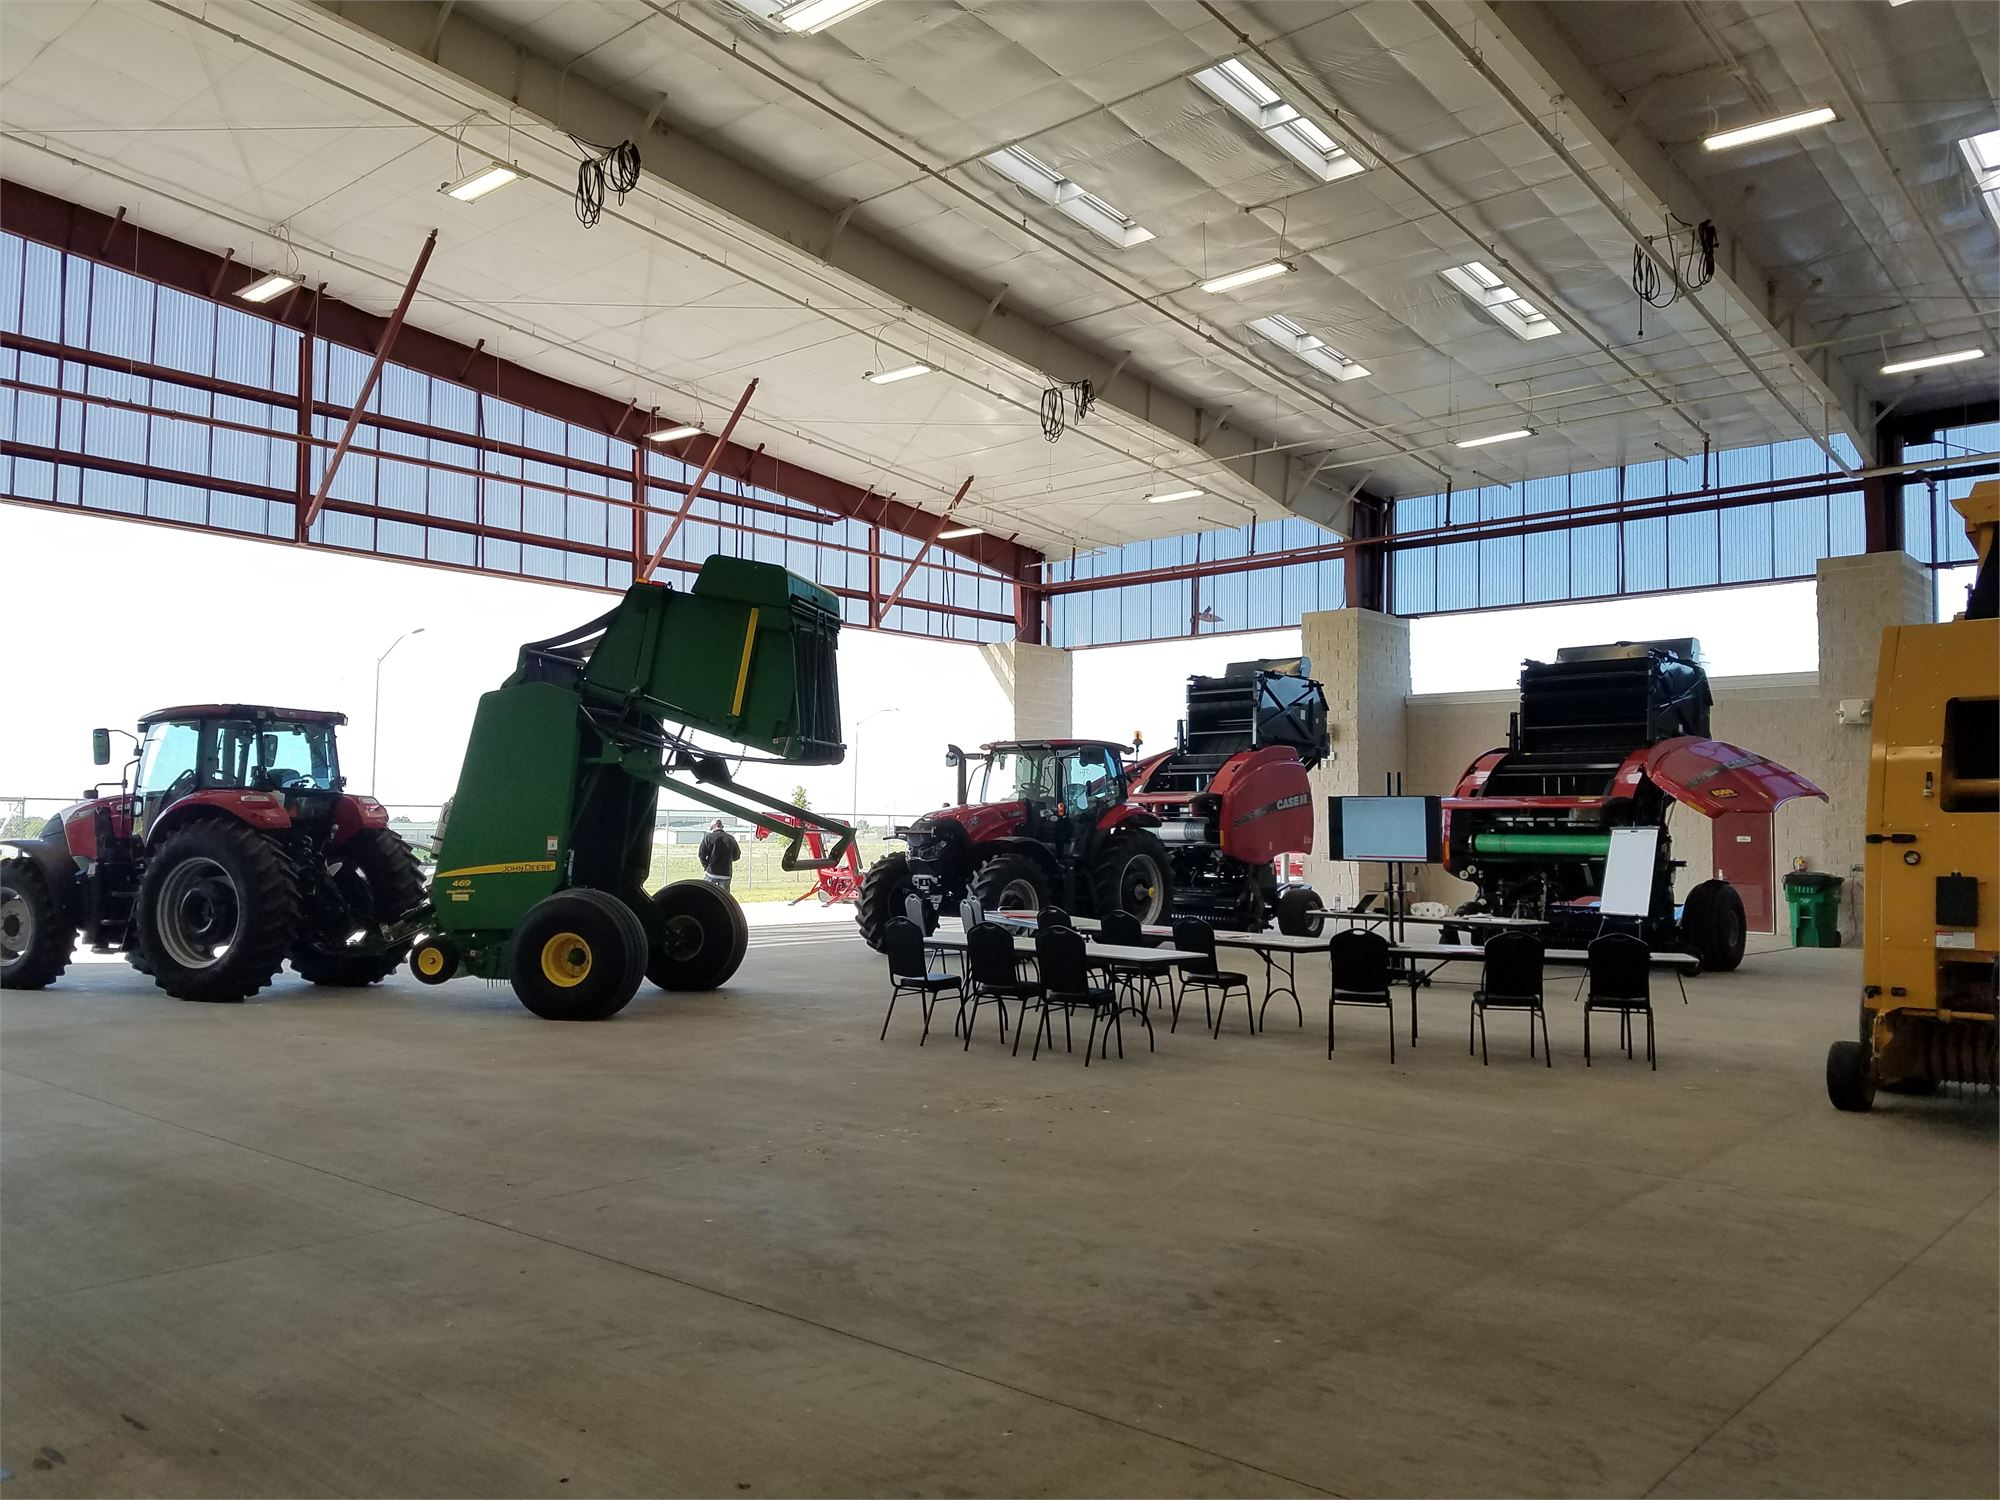 Covered expo with four tractors and other farm equipment setup for a demonstrastration